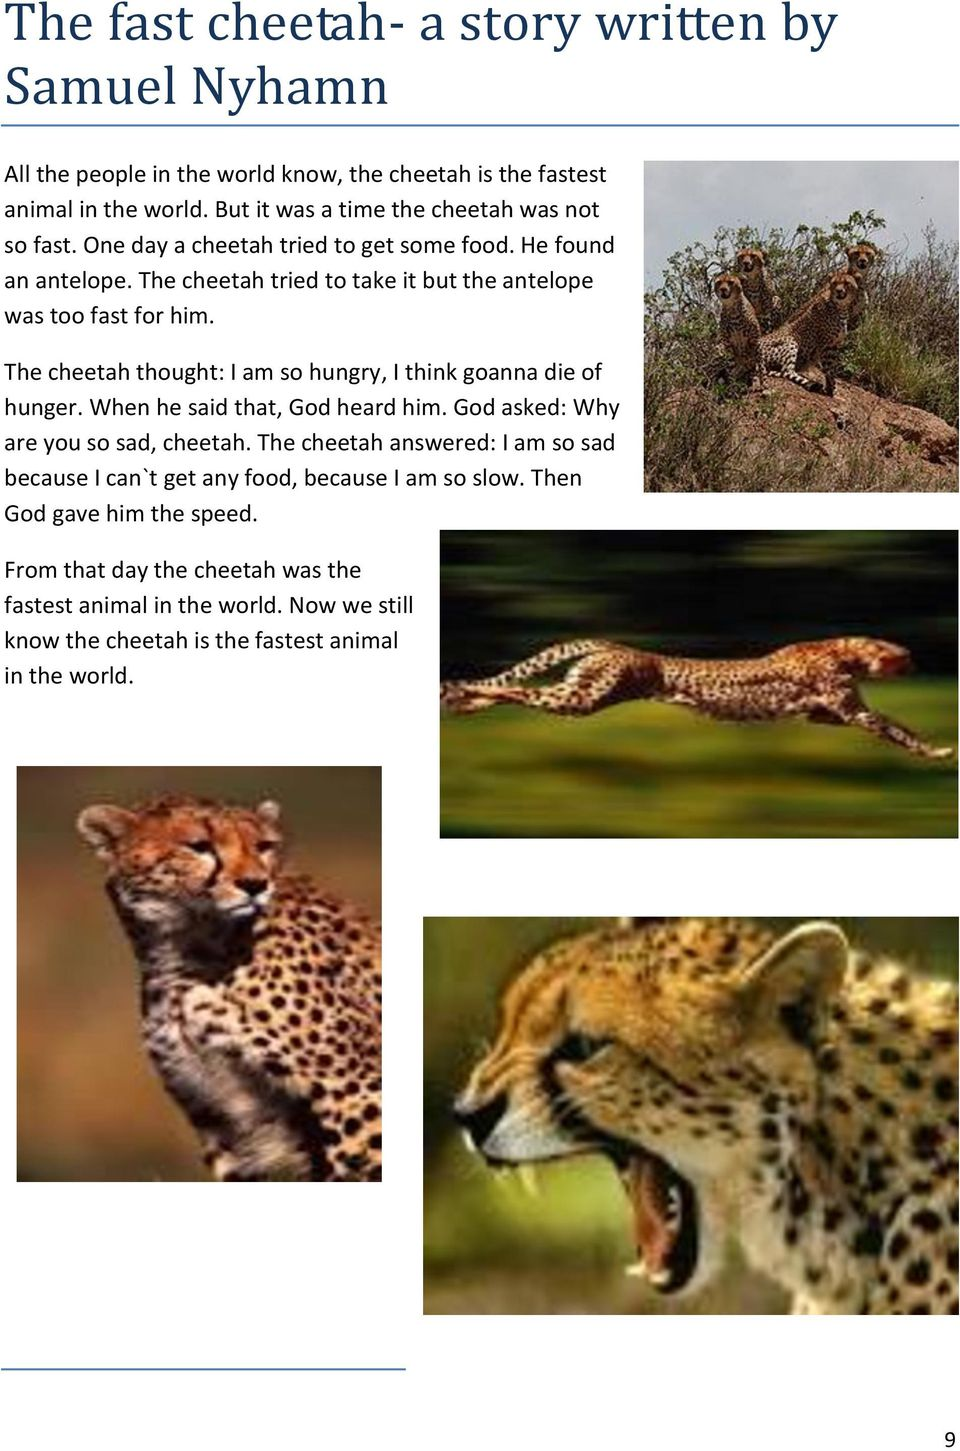 The cheetah tried to take it but the antelope was too fast for him. The cheetah thought: I am so hungry, I think goanna die of hunger. When he said that, God heard him.